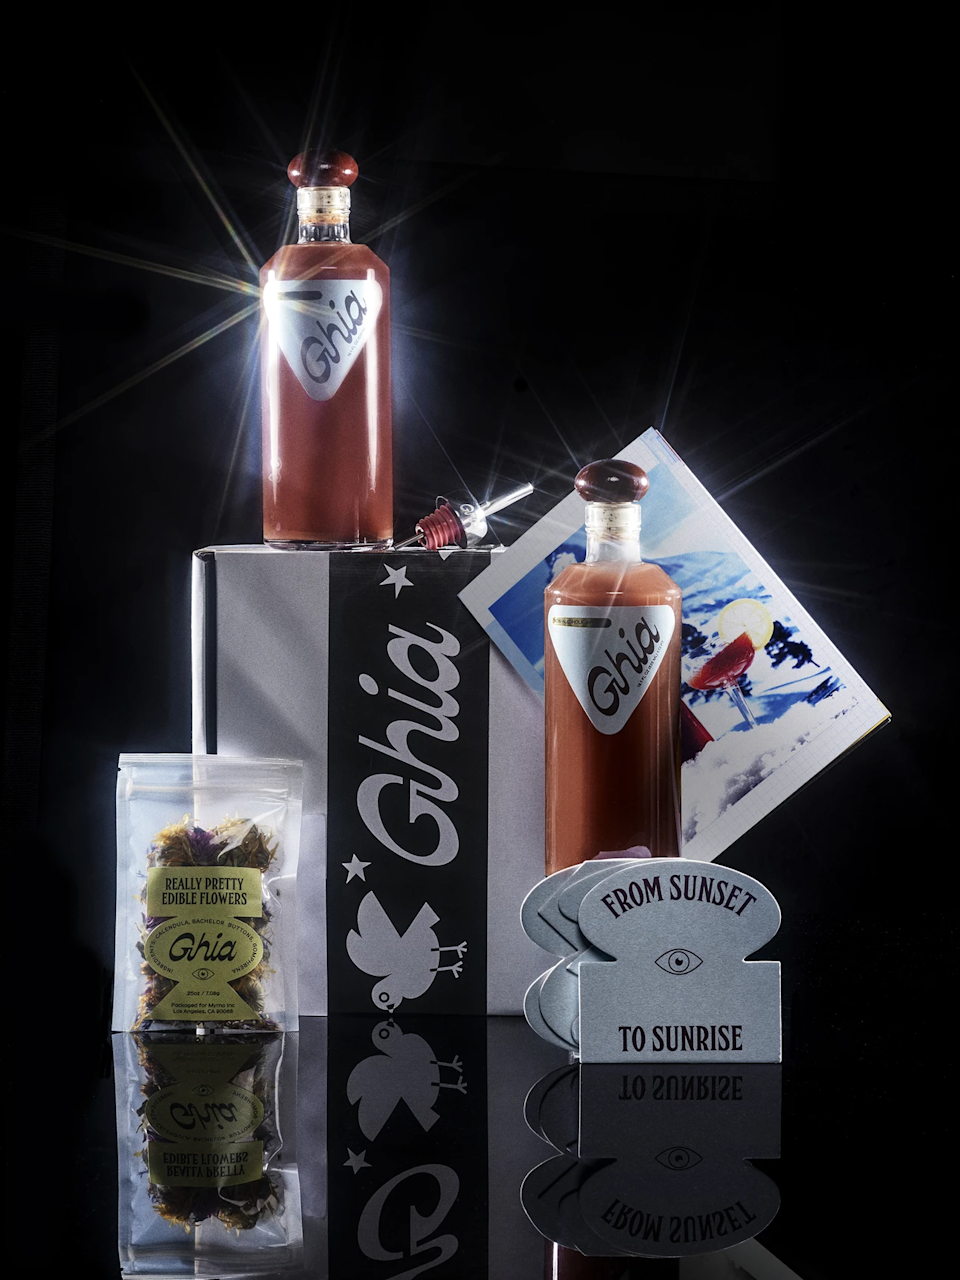 """<h3>Ghia Holiday Box</h3><br>Ghia makes beautifully crafted spirit-free aperitifs perfect for the holiday season. Their holiday box includes bar cart essentials like coasters, a custom holiday pour spout, dried edible flowers, a chef-curated recipe book, and of course their signature aperitif. <br><br><strong>Ghia</strong> Holiday Box, $, available at <a href=""""https://go.skimresources.com/?id=30283X879131&url=https%3A%2F%2Fdrinkghia.com%2Fproducts%2Fholiday-box"""" rel=""""nofollow noopener"""" target=""""_blank"""" data-ylk=""""slk:Ghia"""" class=""""link rapid-noclick-resp"""">Ghia</a>"""